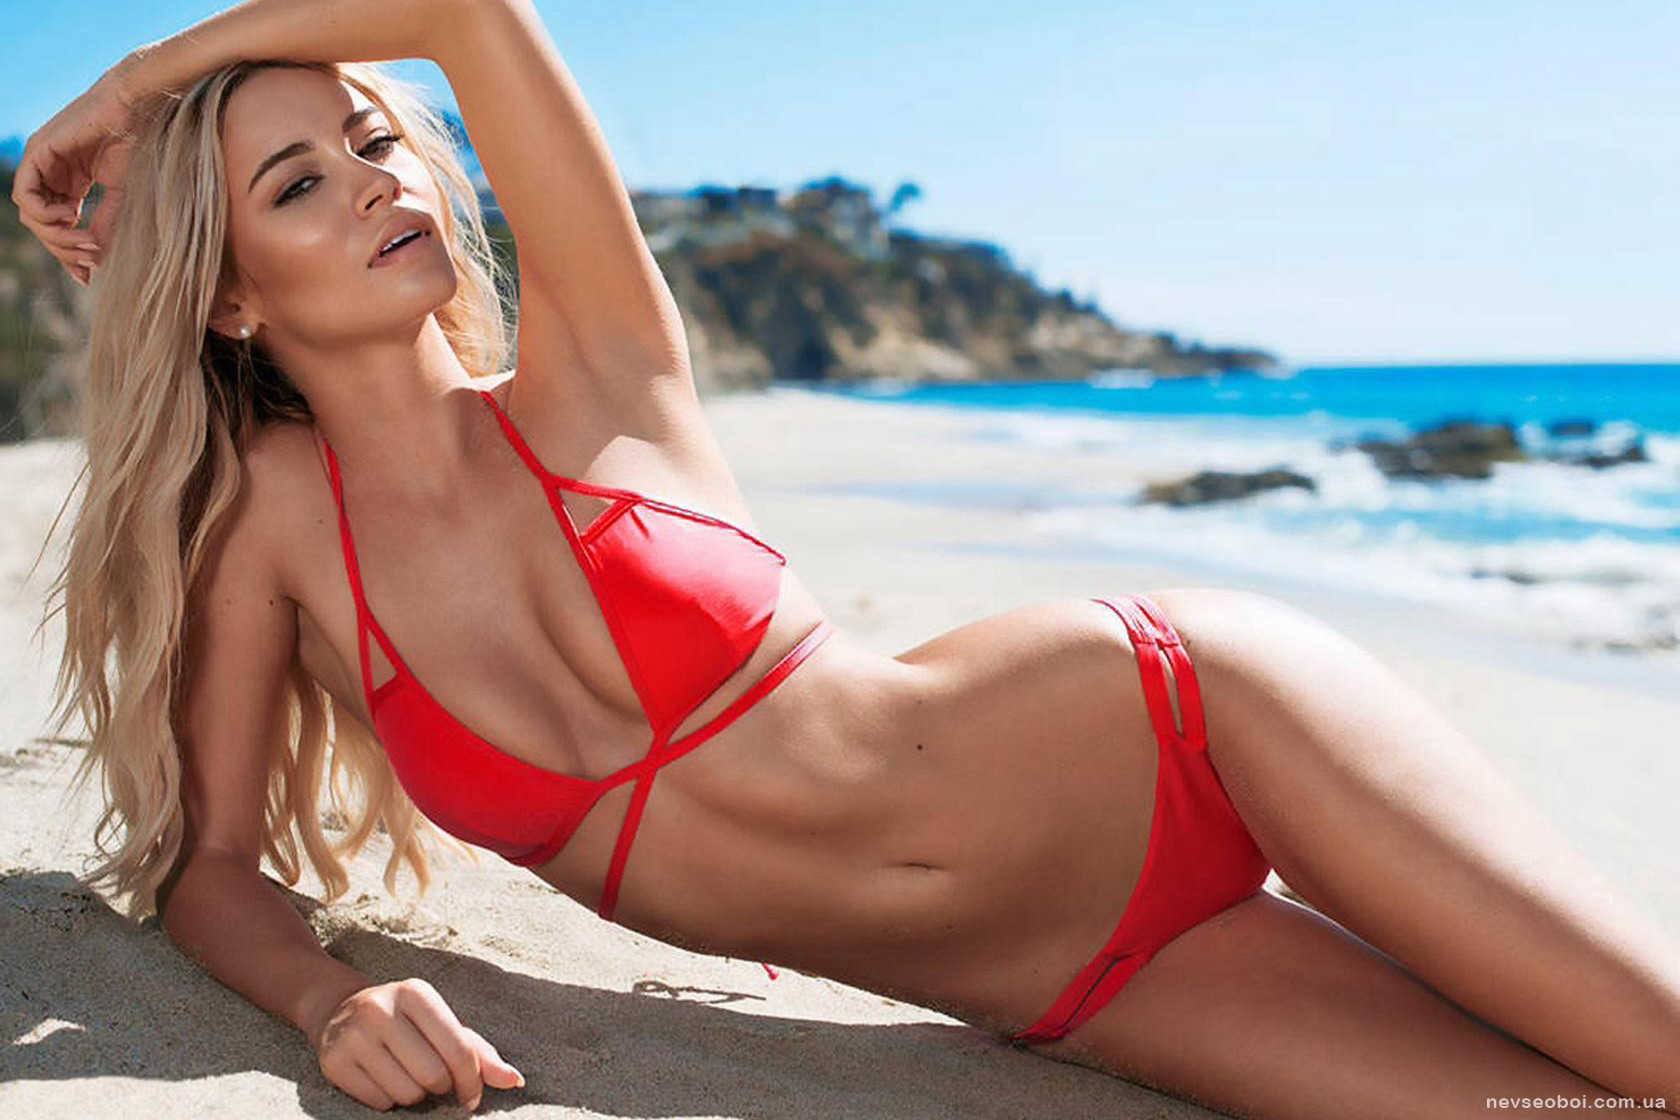 Bryana Holly Wallpapers